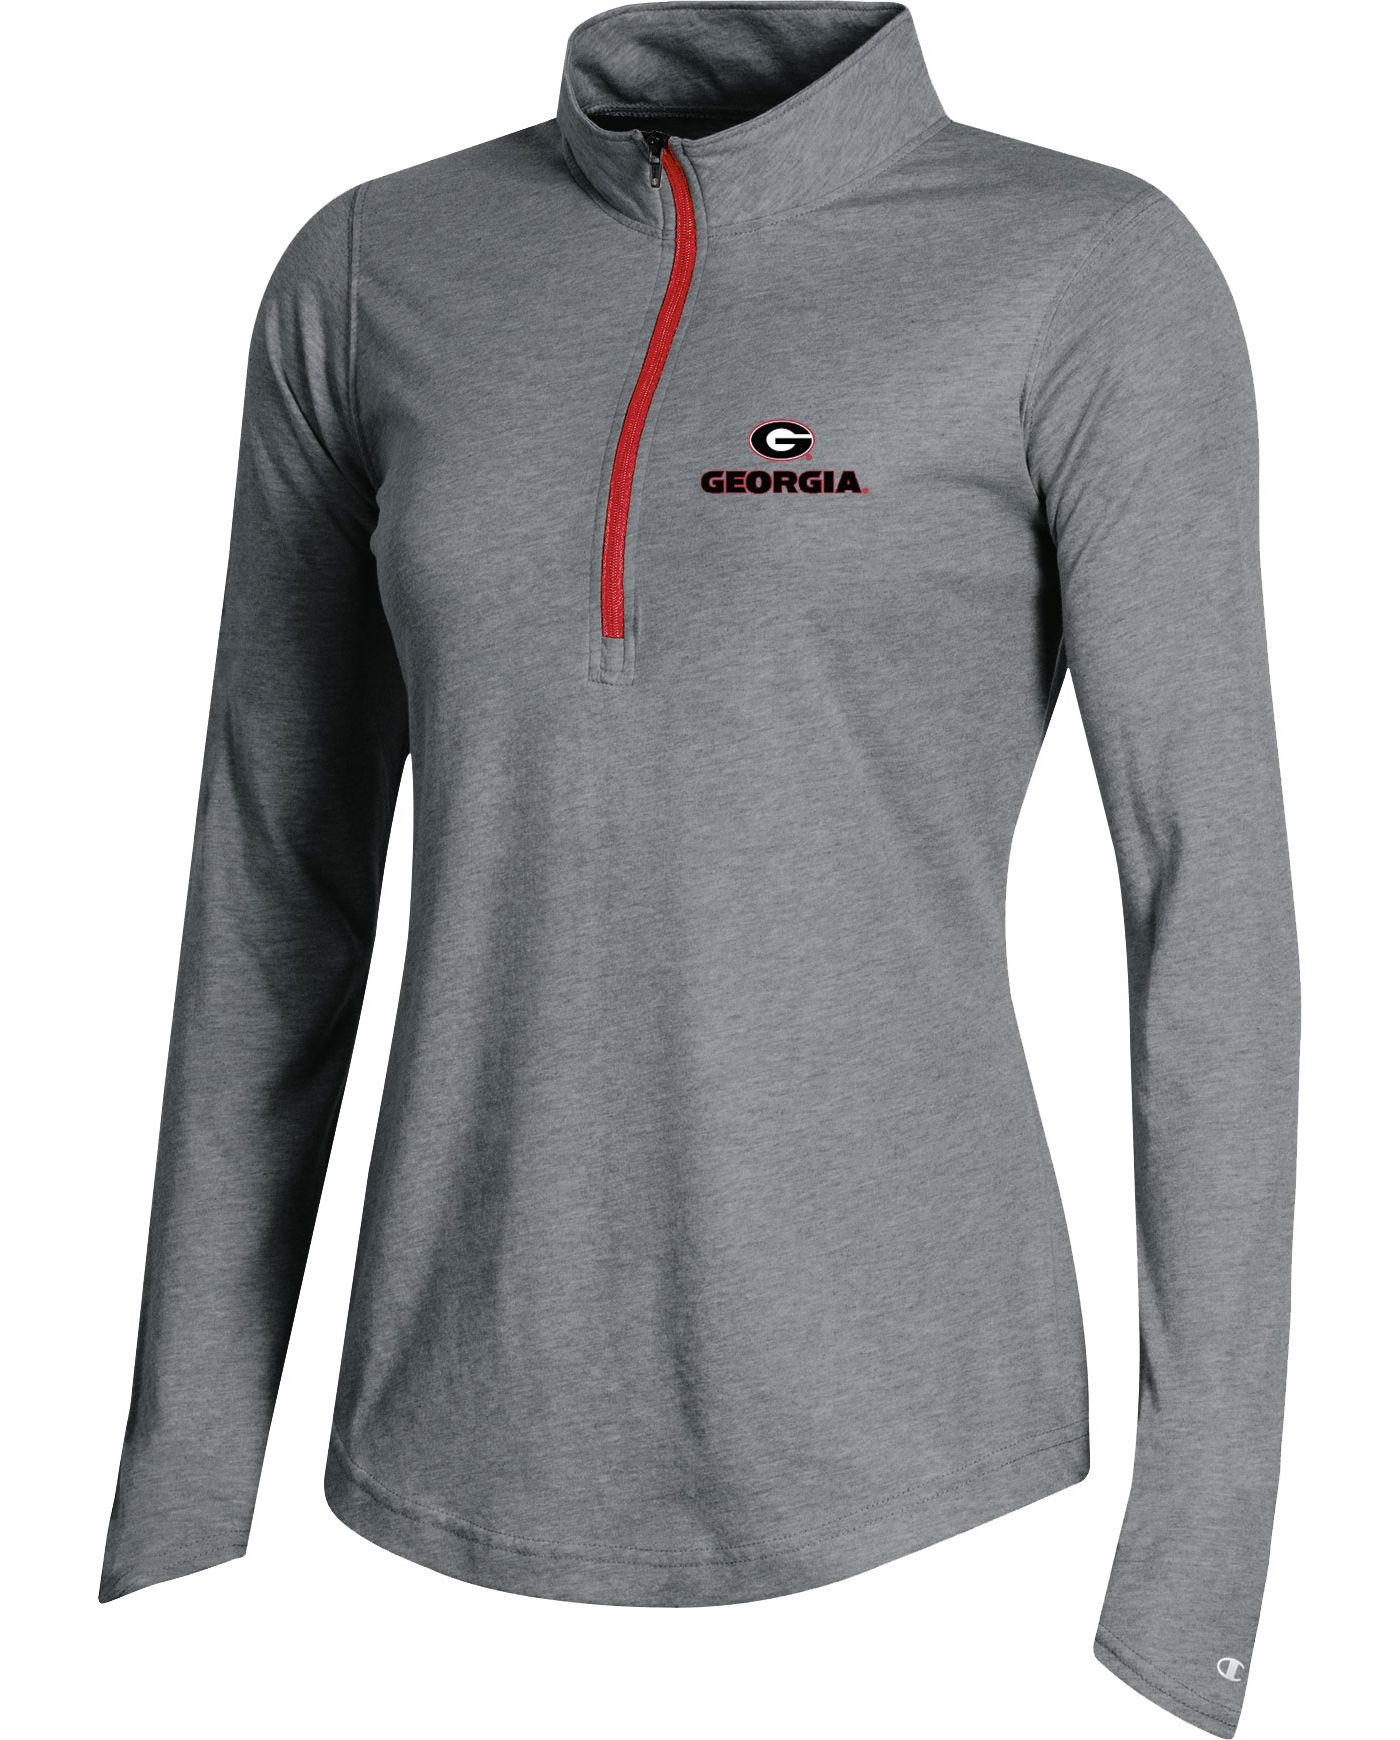 Champion Women's Georgia Bulldogs Grey Quarter-Zip Performance Shirt